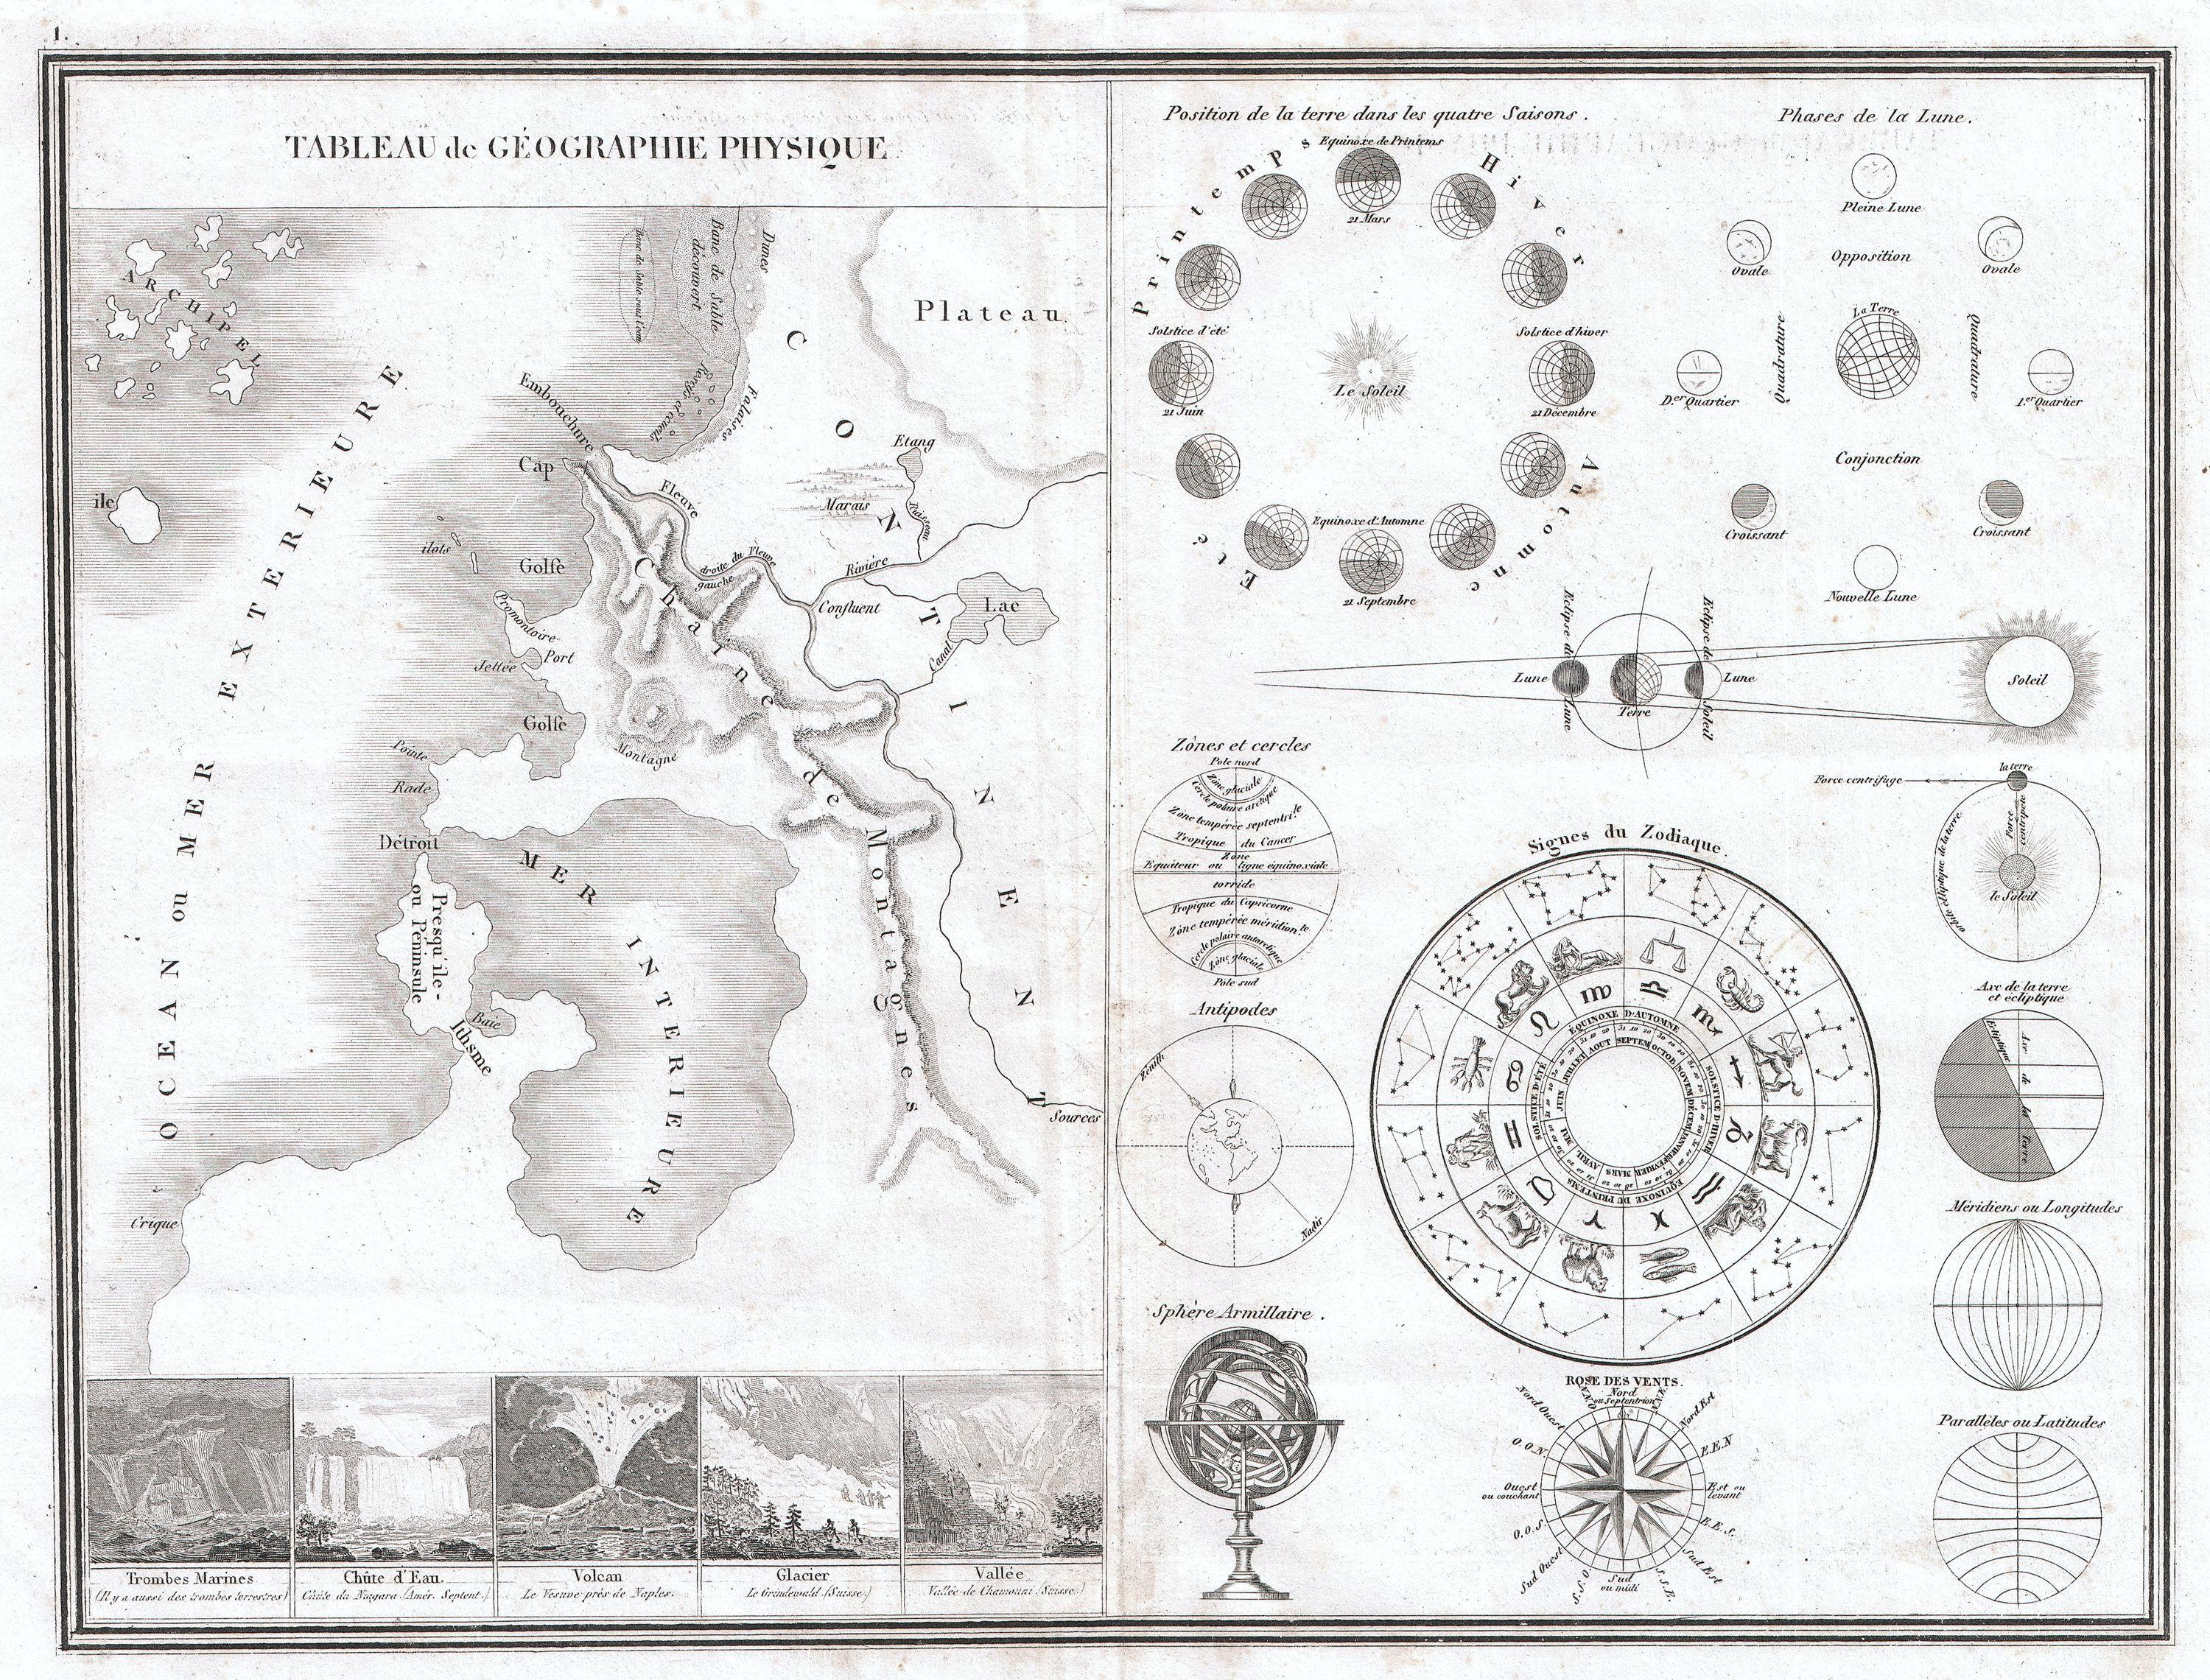 Zodiac Chart: 1838 Monin Map or Physical Tableau and Astronomy Chart ,Chart